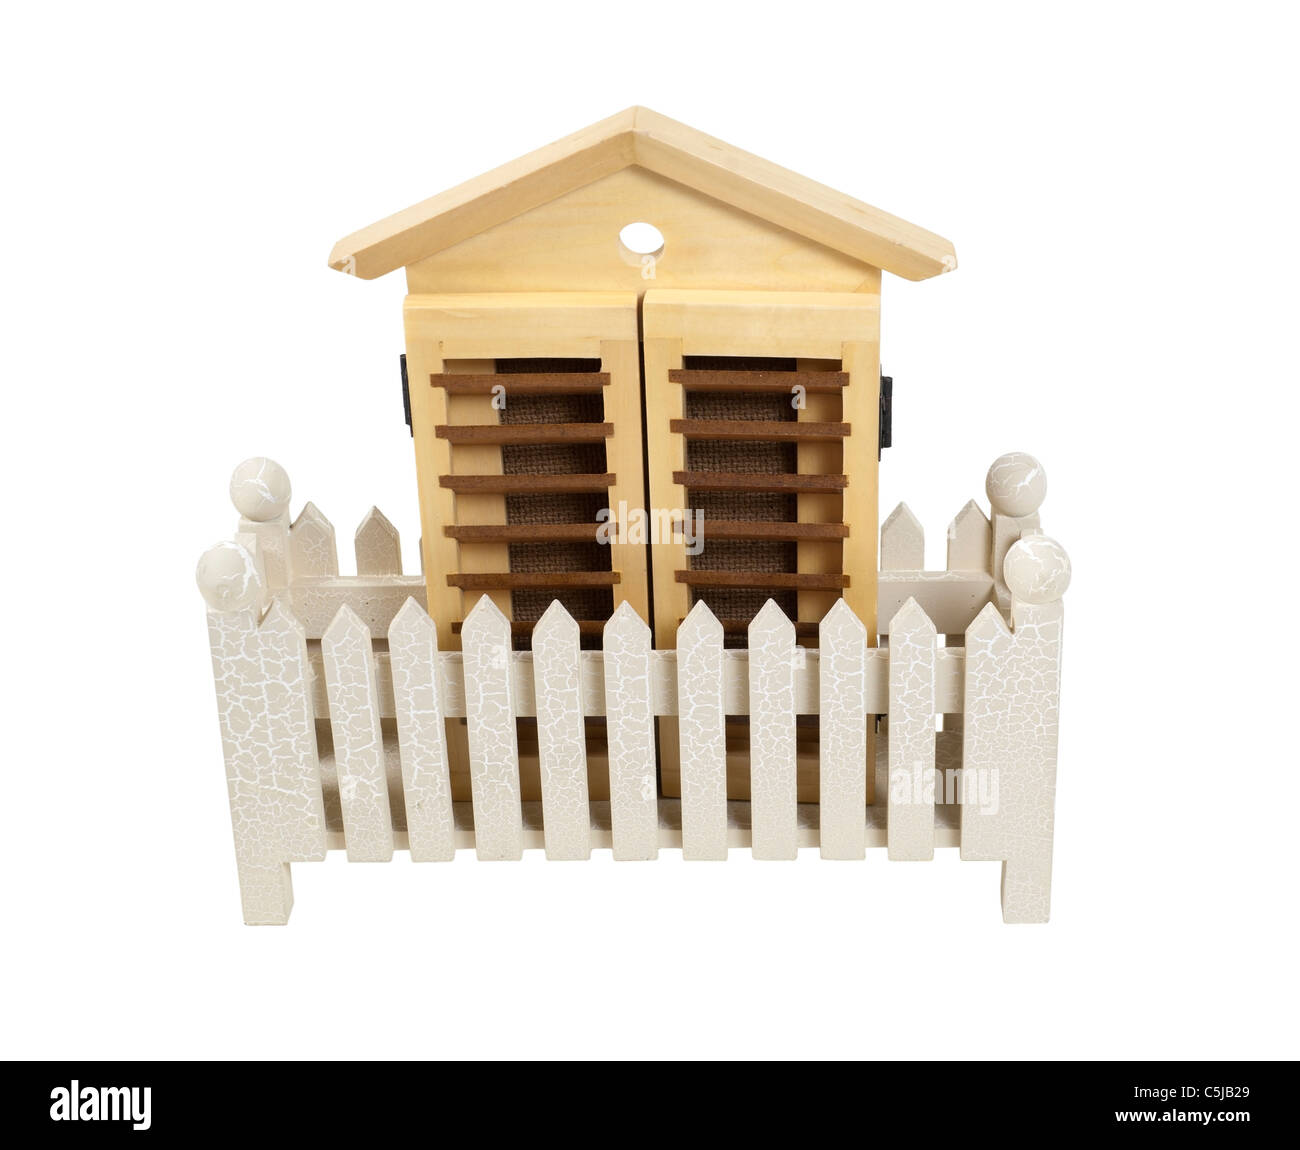 House with wooden shutters and a white picket fence - path included - Stock Image